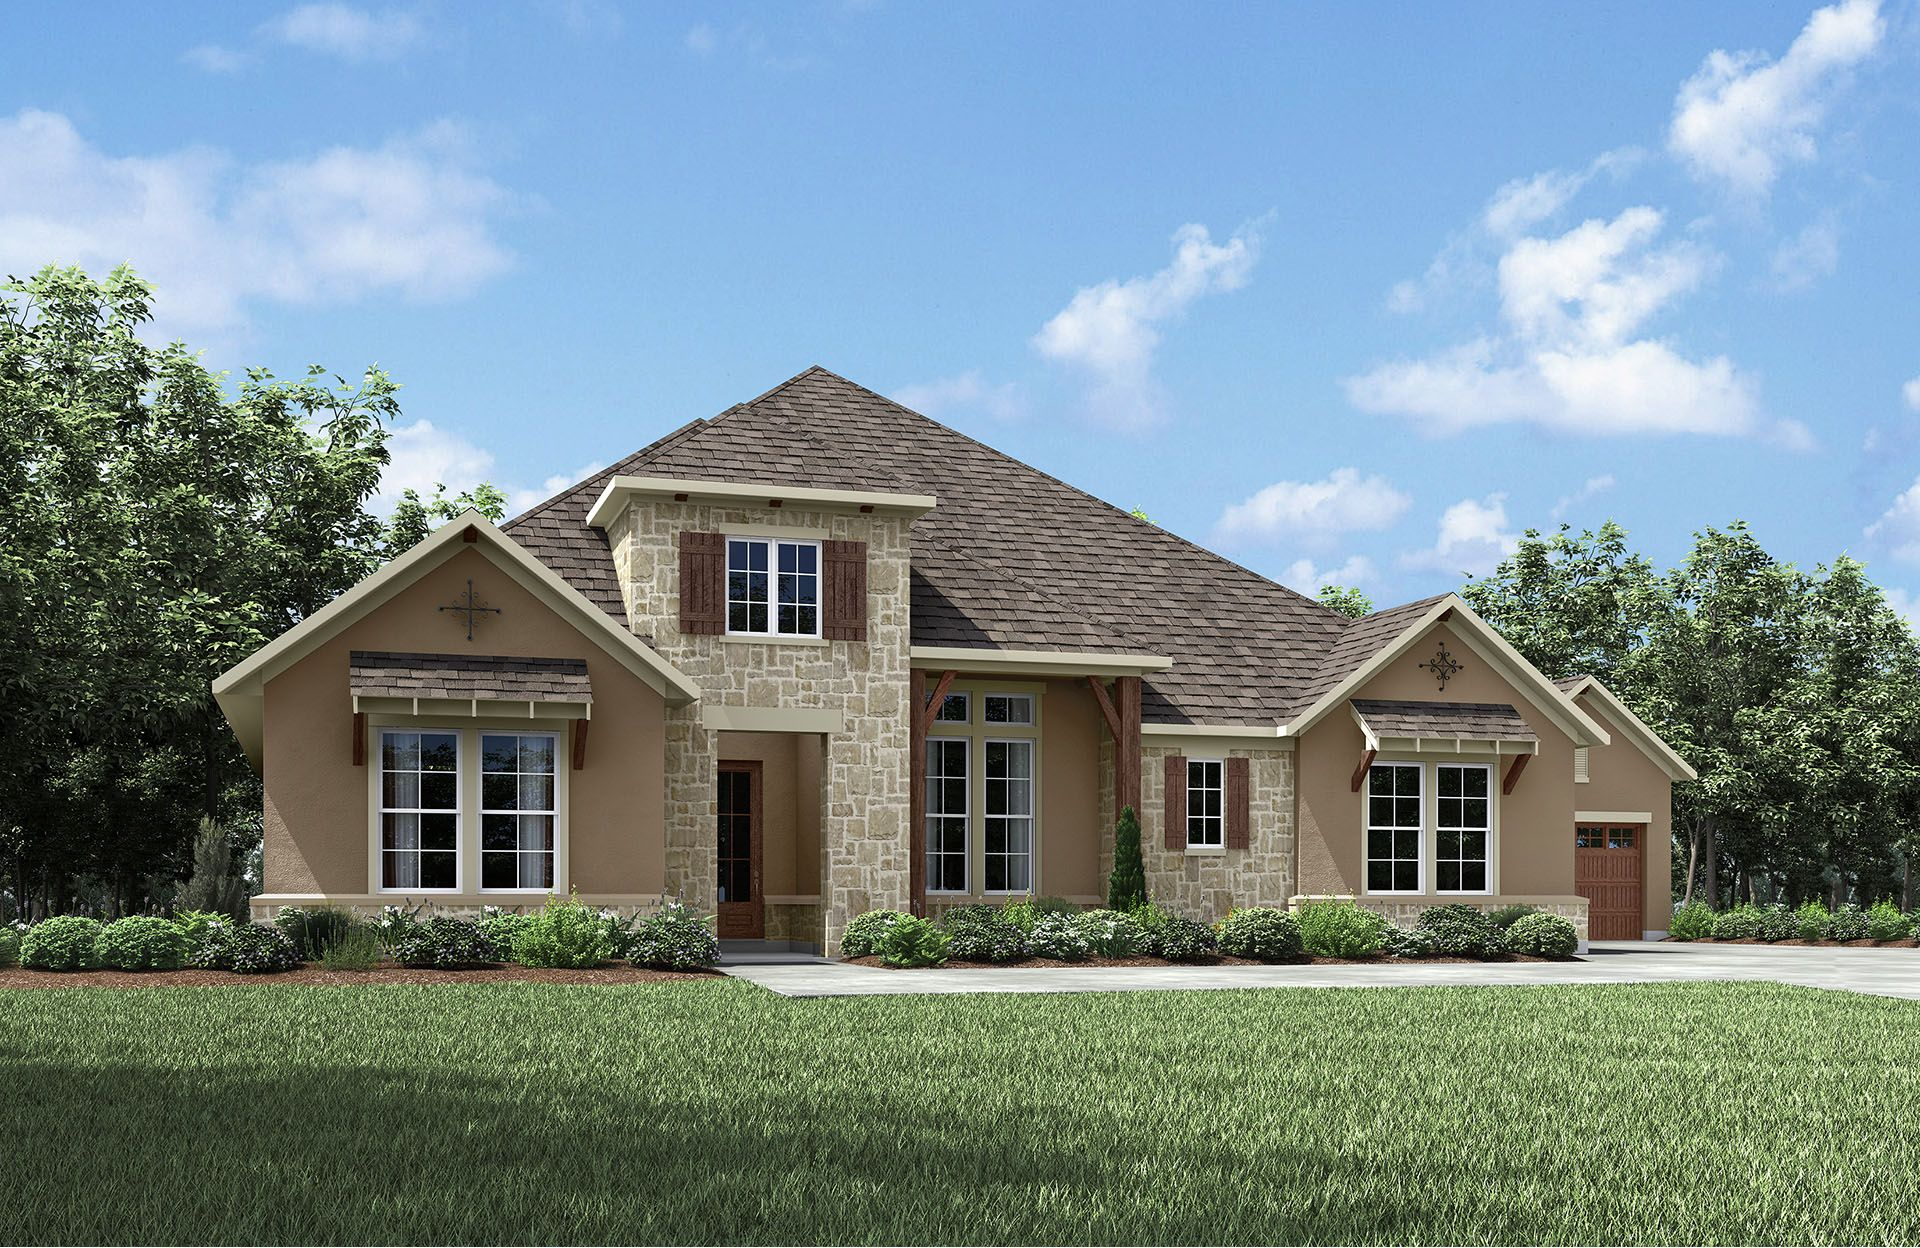 Single Family for Sale at Castella Ii 278 Premier Park Loop Dripping Springs, Texas 78620 United States